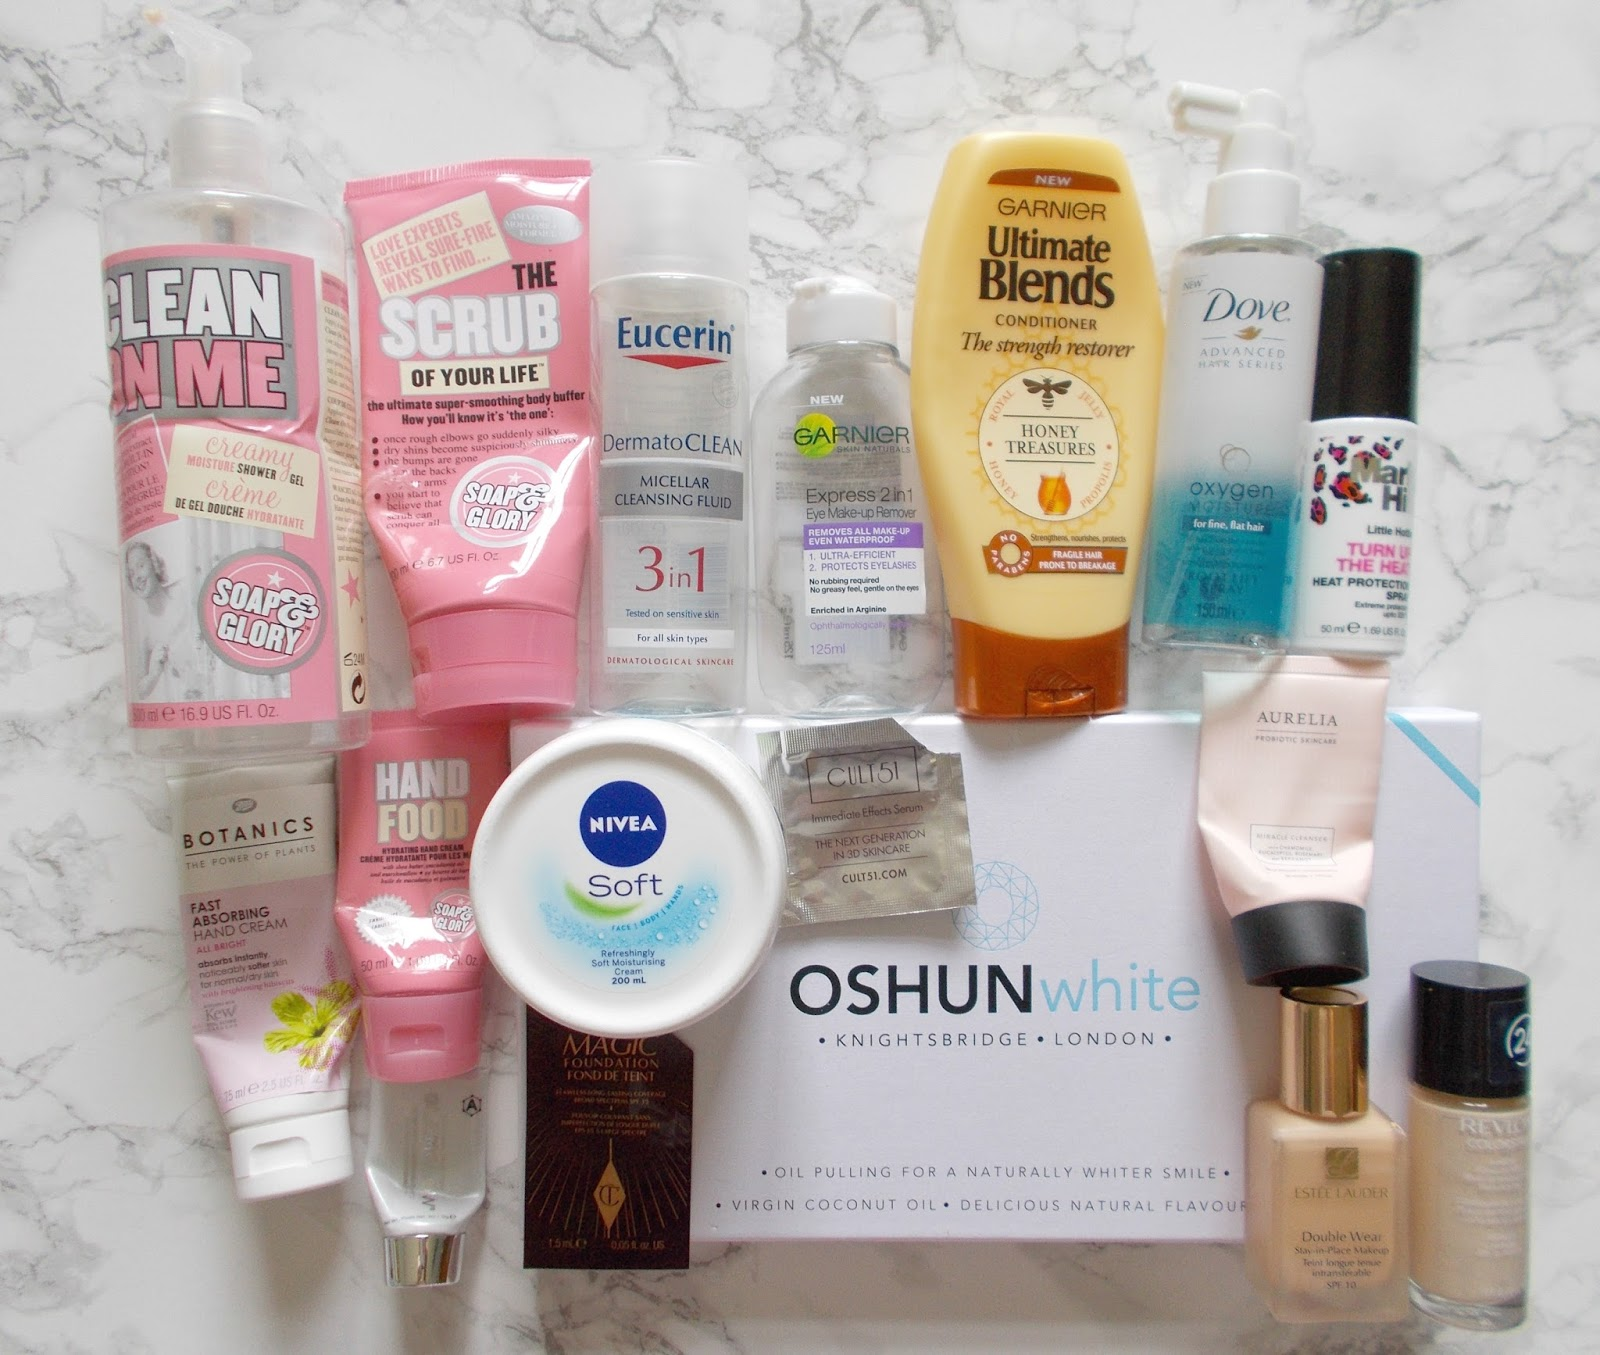 danielles beauty blog empties 10 soap and glory garnier aurelia mark hill nivea botanics estee lauder revlon dove